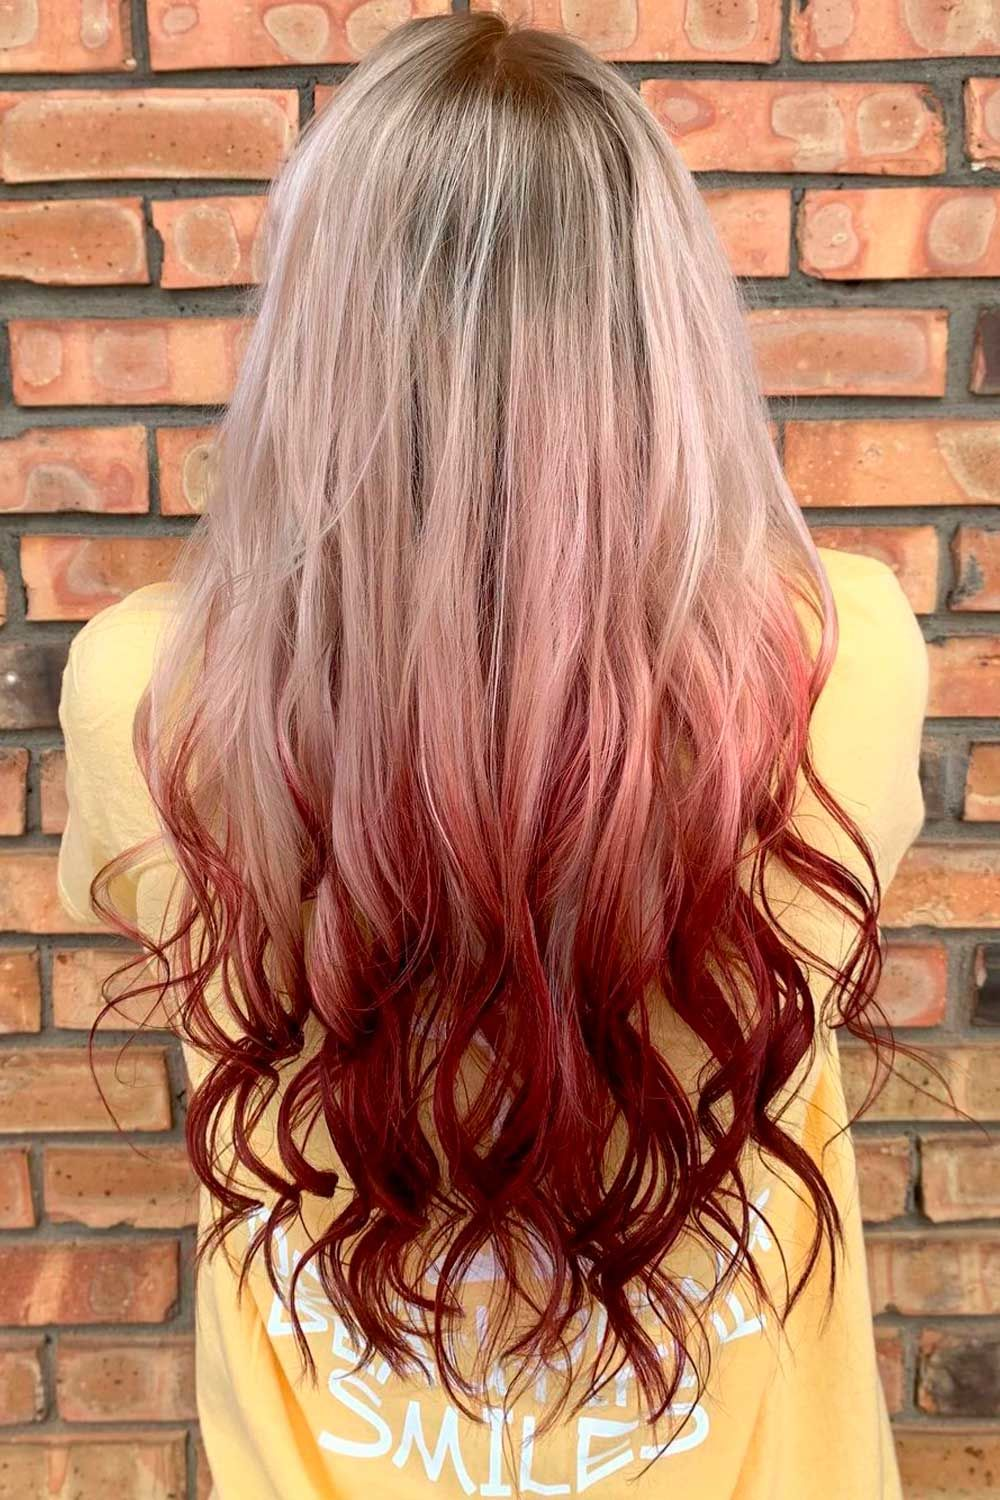 Reverse Red Ombre Hair With Blonde Top, Ombre Hairstyles for Long Hair, reverse red ombre hair, reverse fire ombre hair